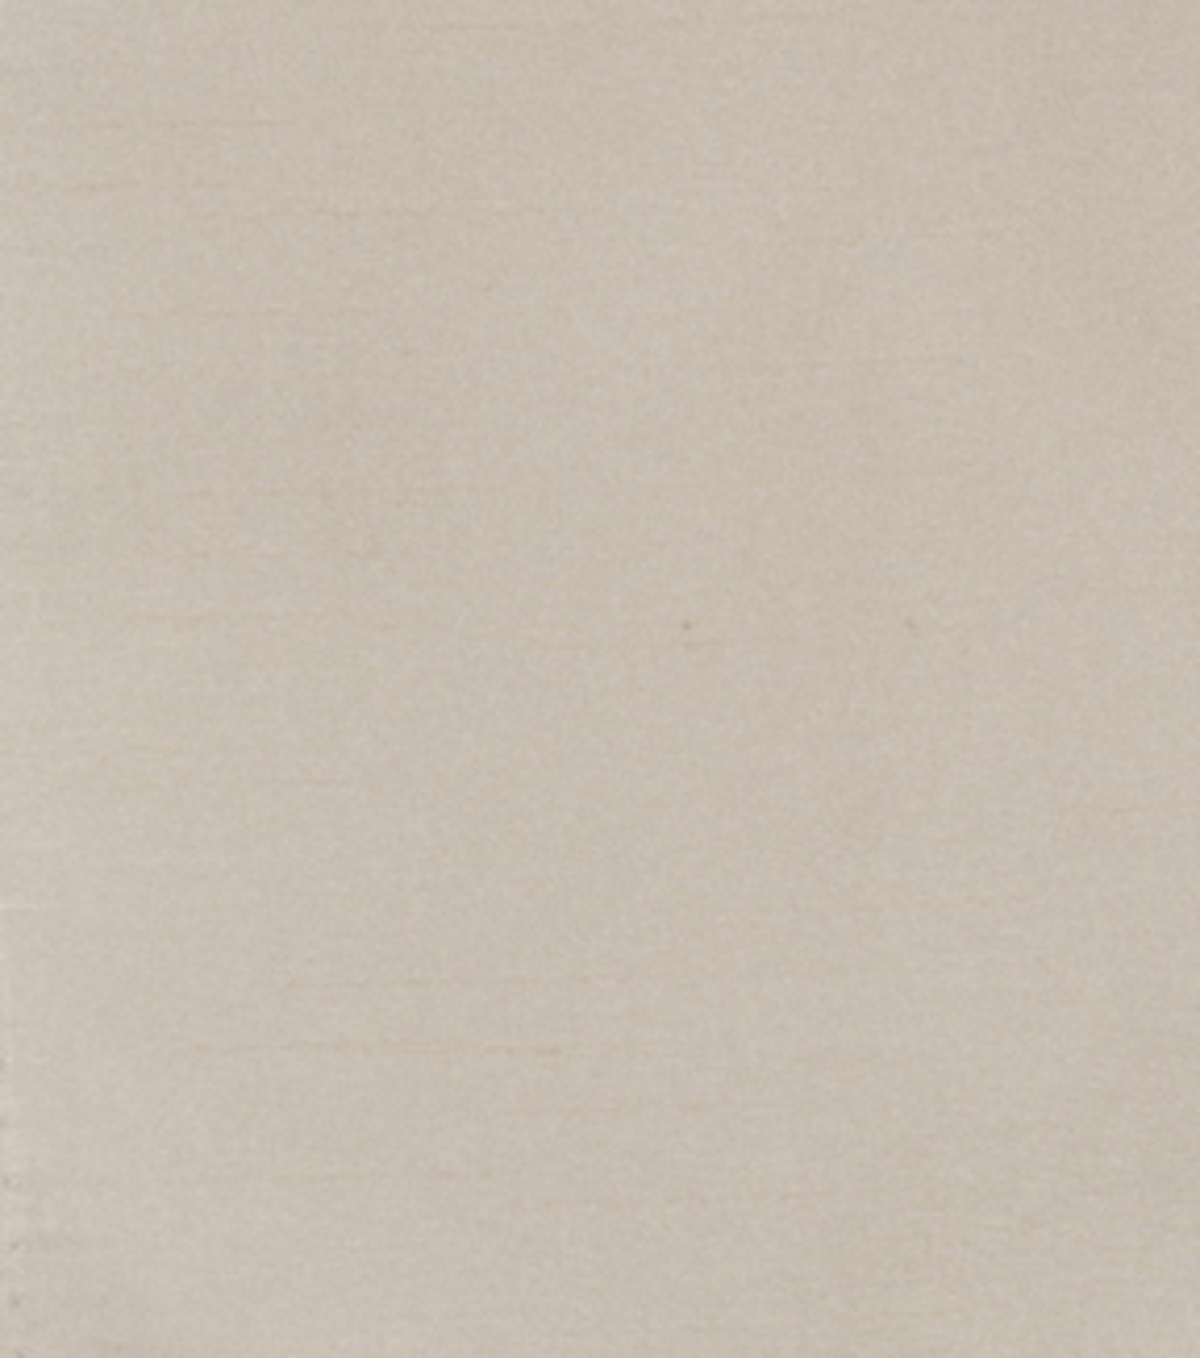 8\u0027\u0027x8\u0027\u0027 Home Decor Fabric Swatch-Solid Fabric Eaton Square Comros Oyster